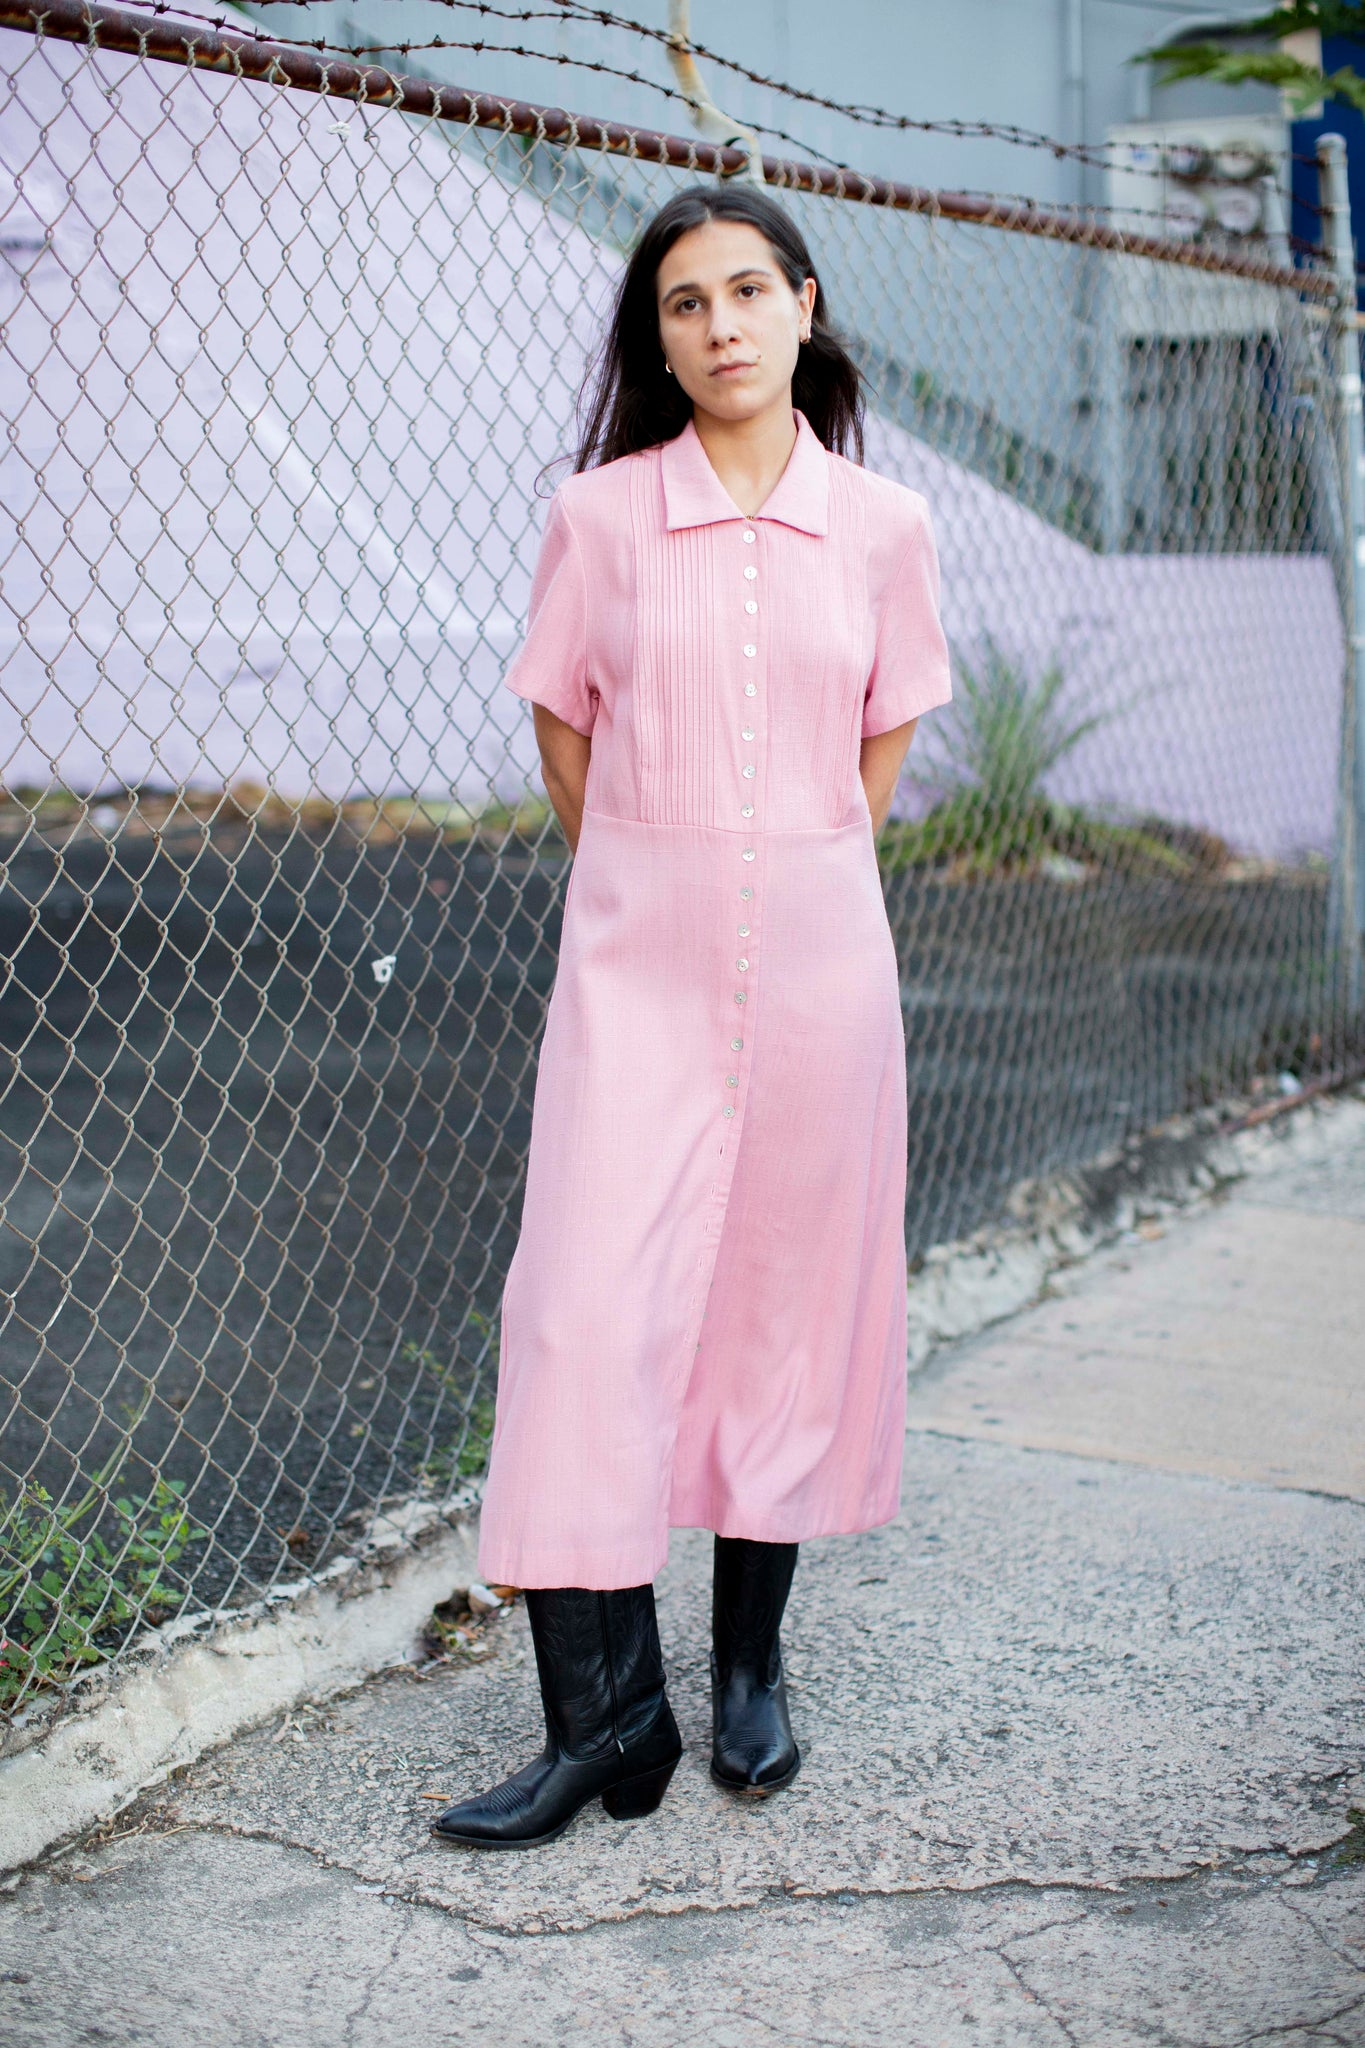 Adorable pink button down dress